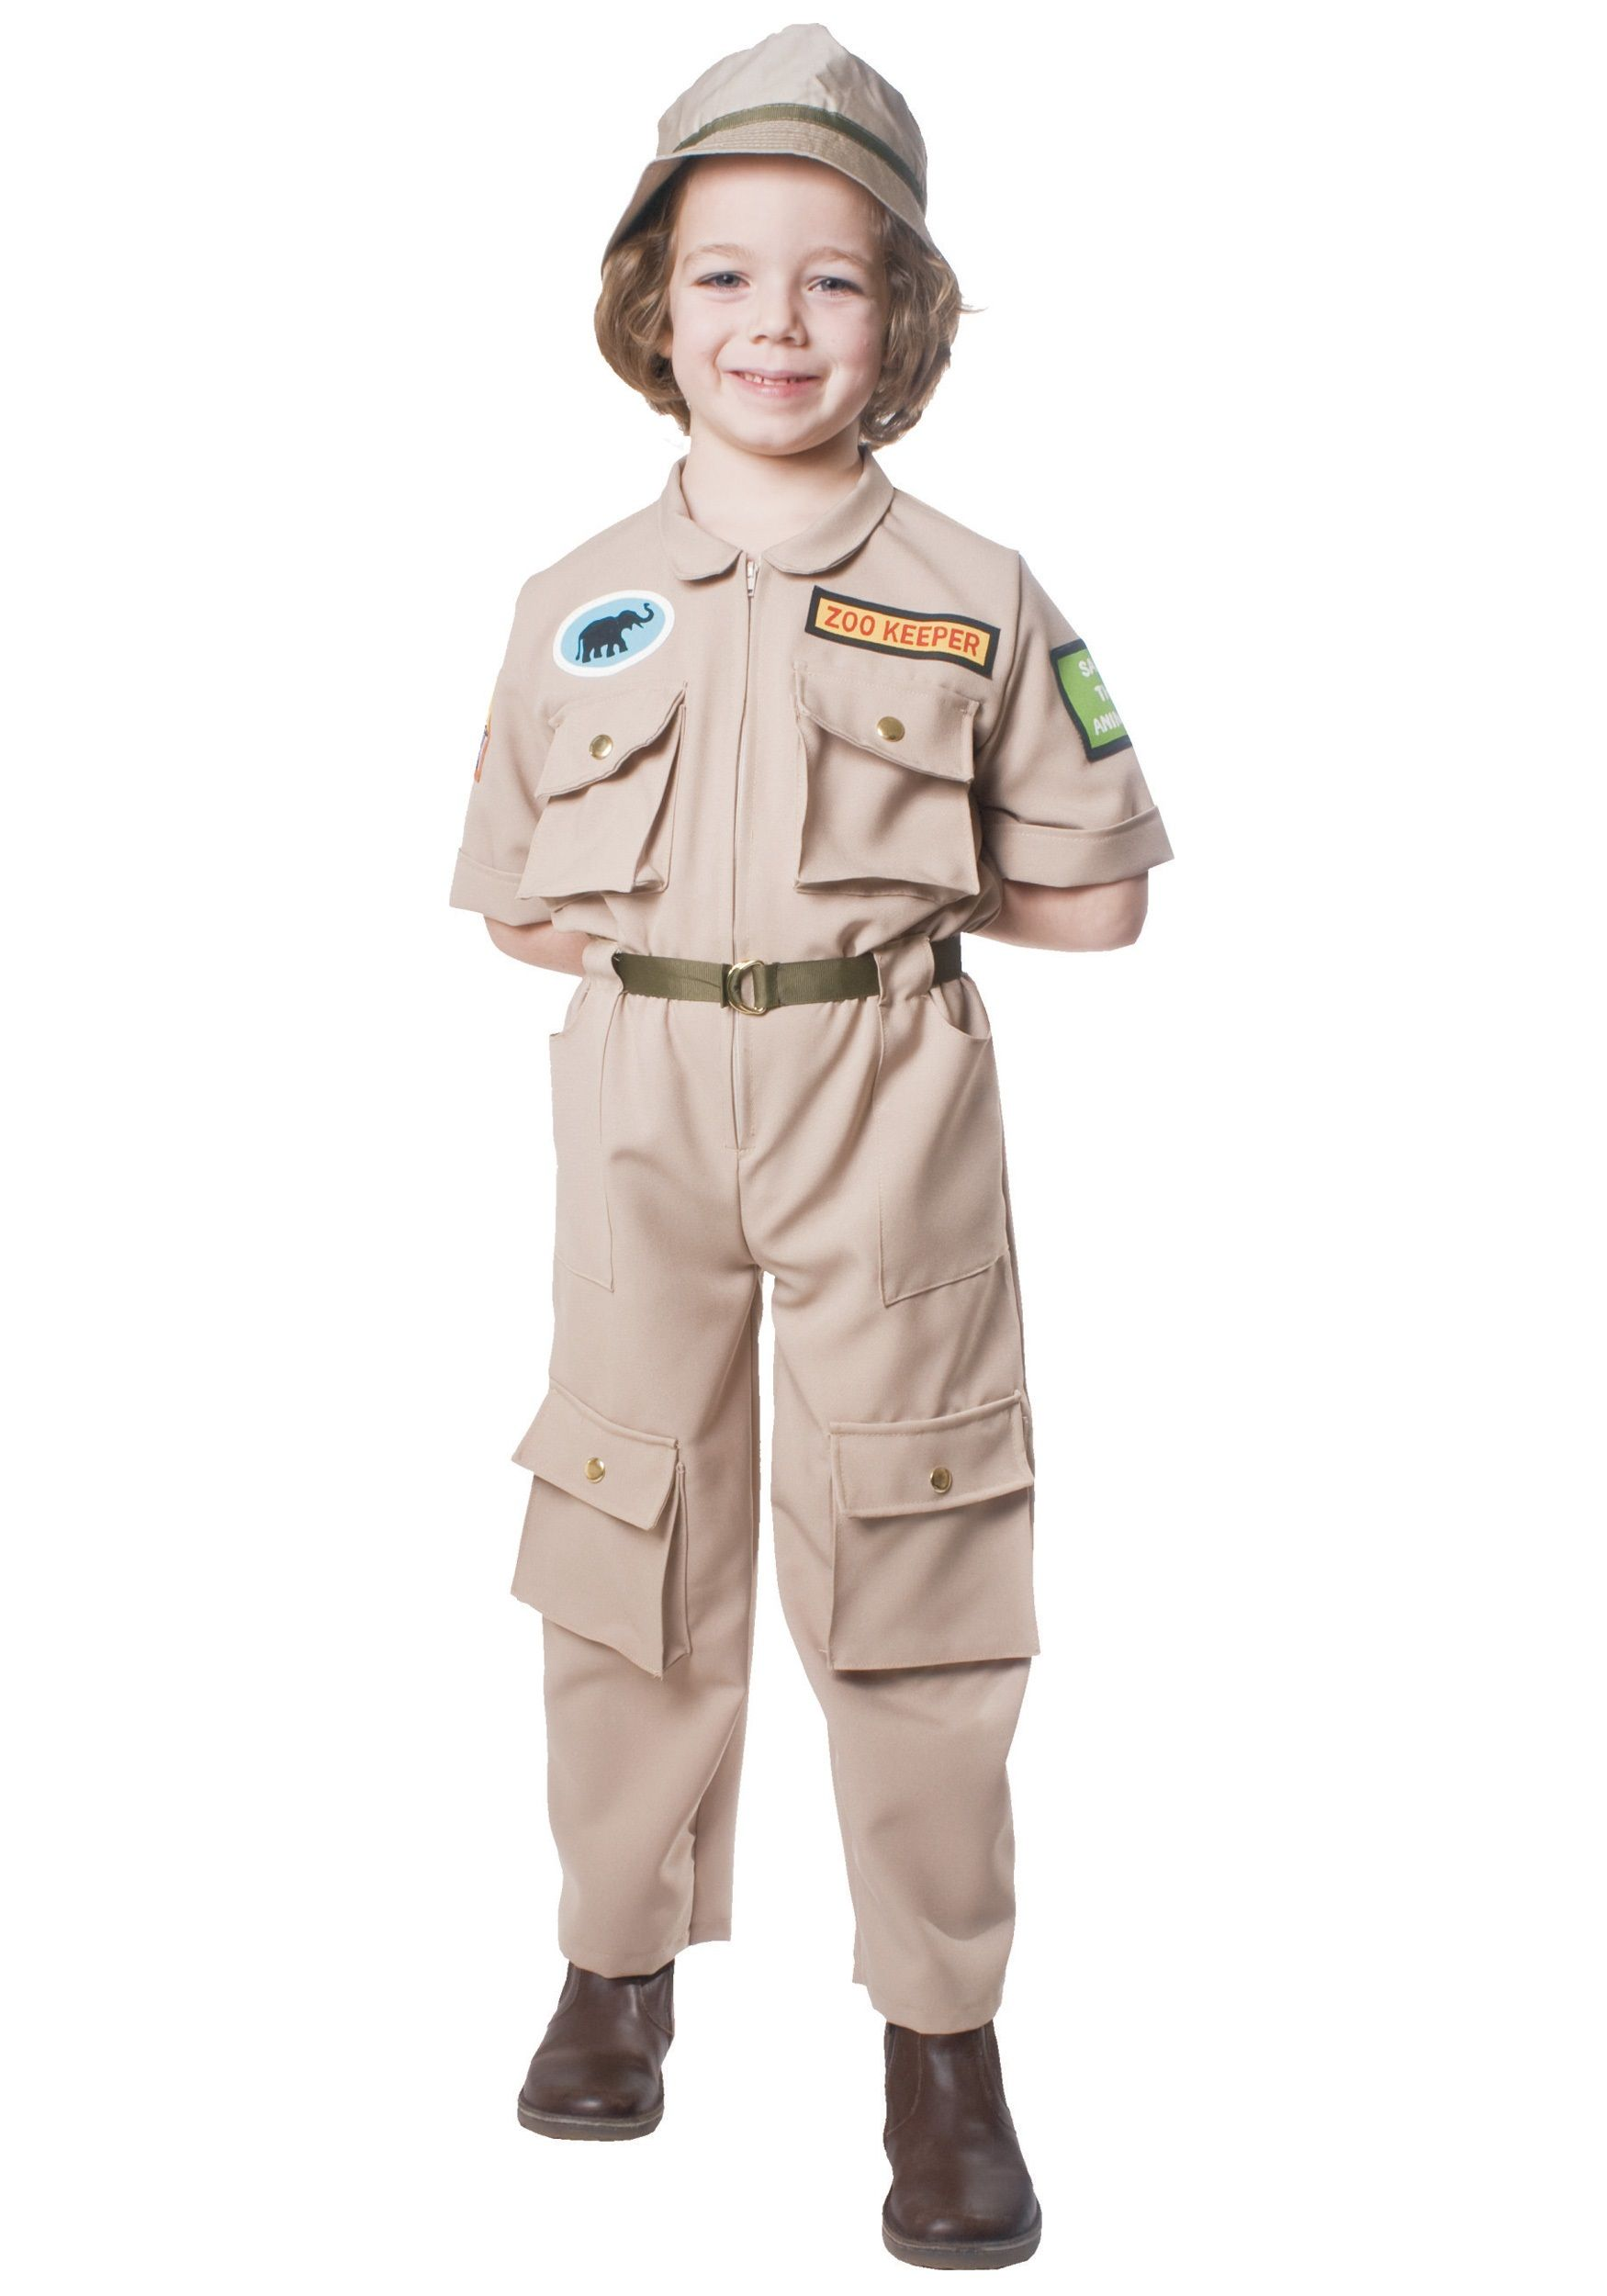 diy zoo keeper costume costume kids , Google Search